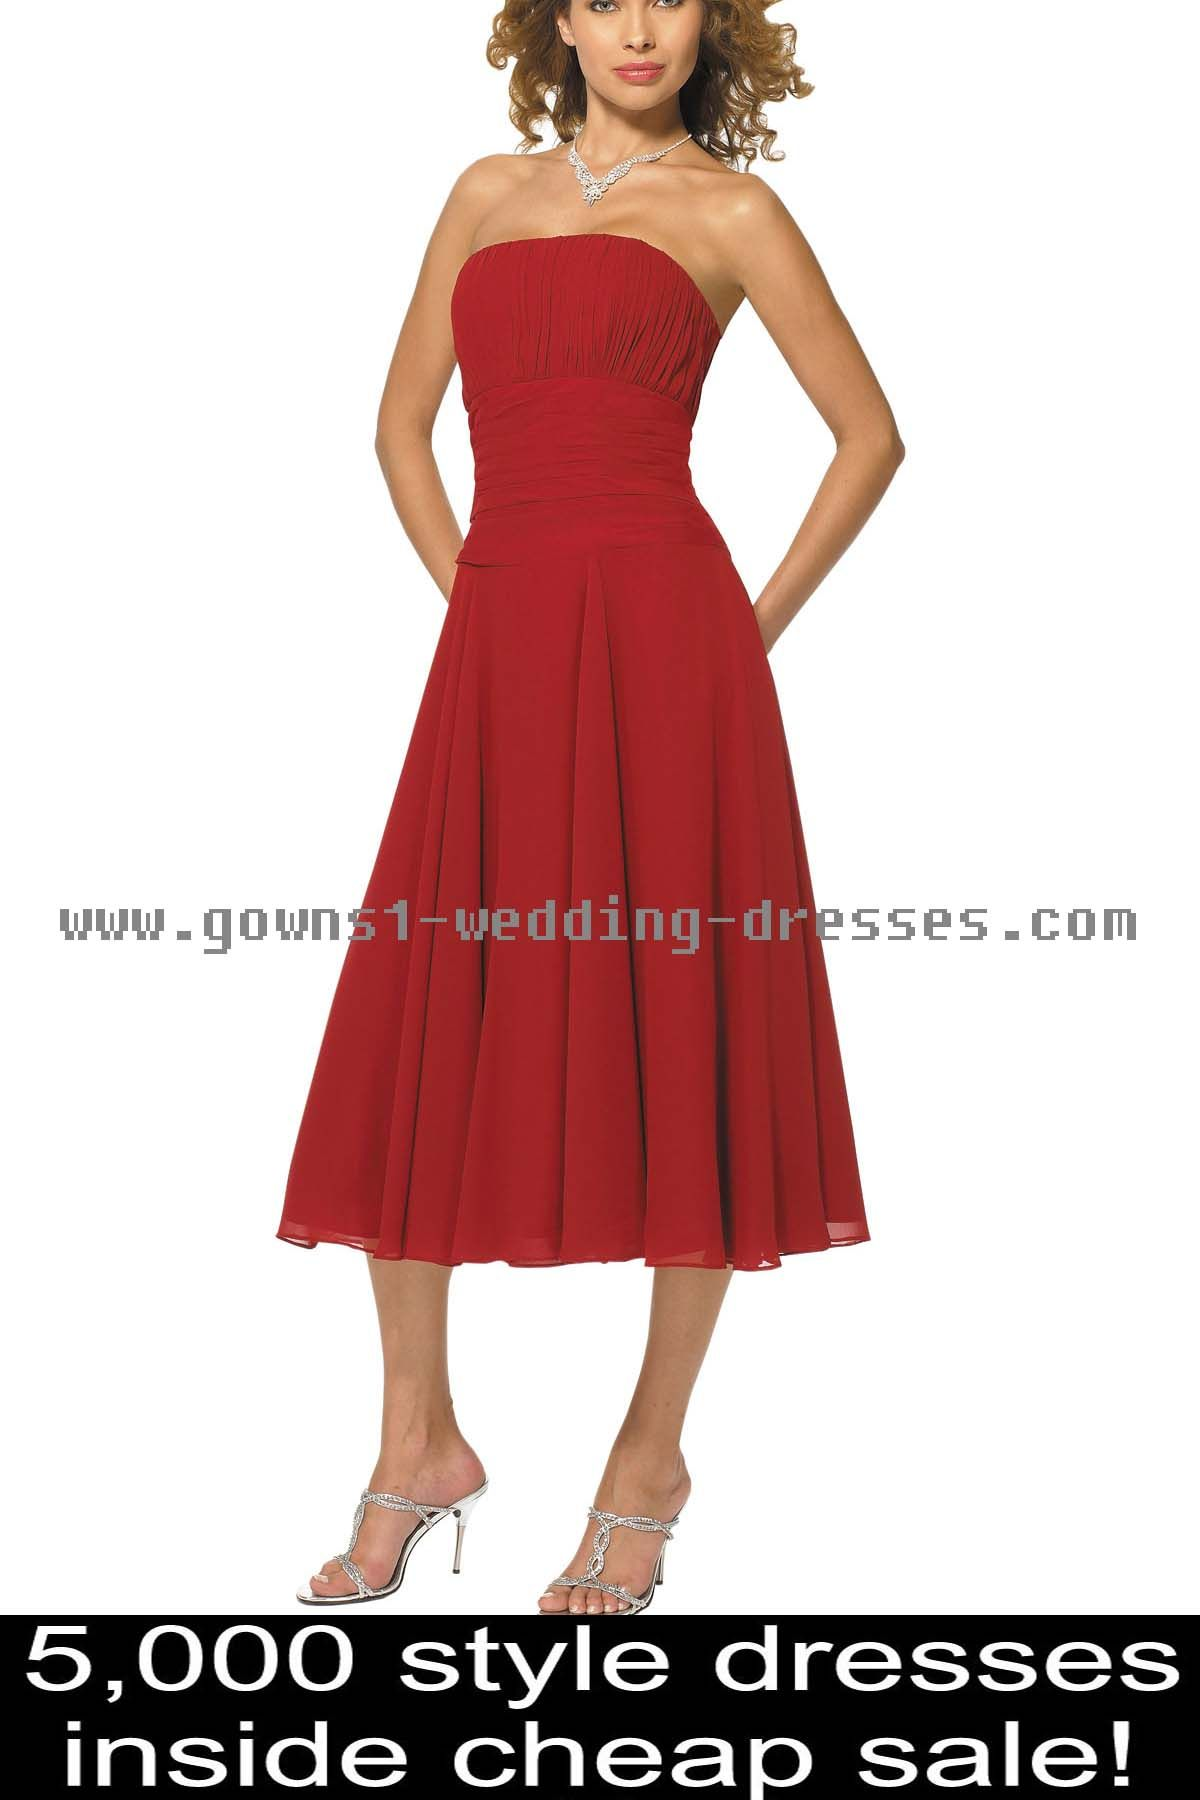 Casual mother of the groom dresses for outdoor wedding  Black And Red Summer Bridesmaid Dresses  Bridesmaid Dresses